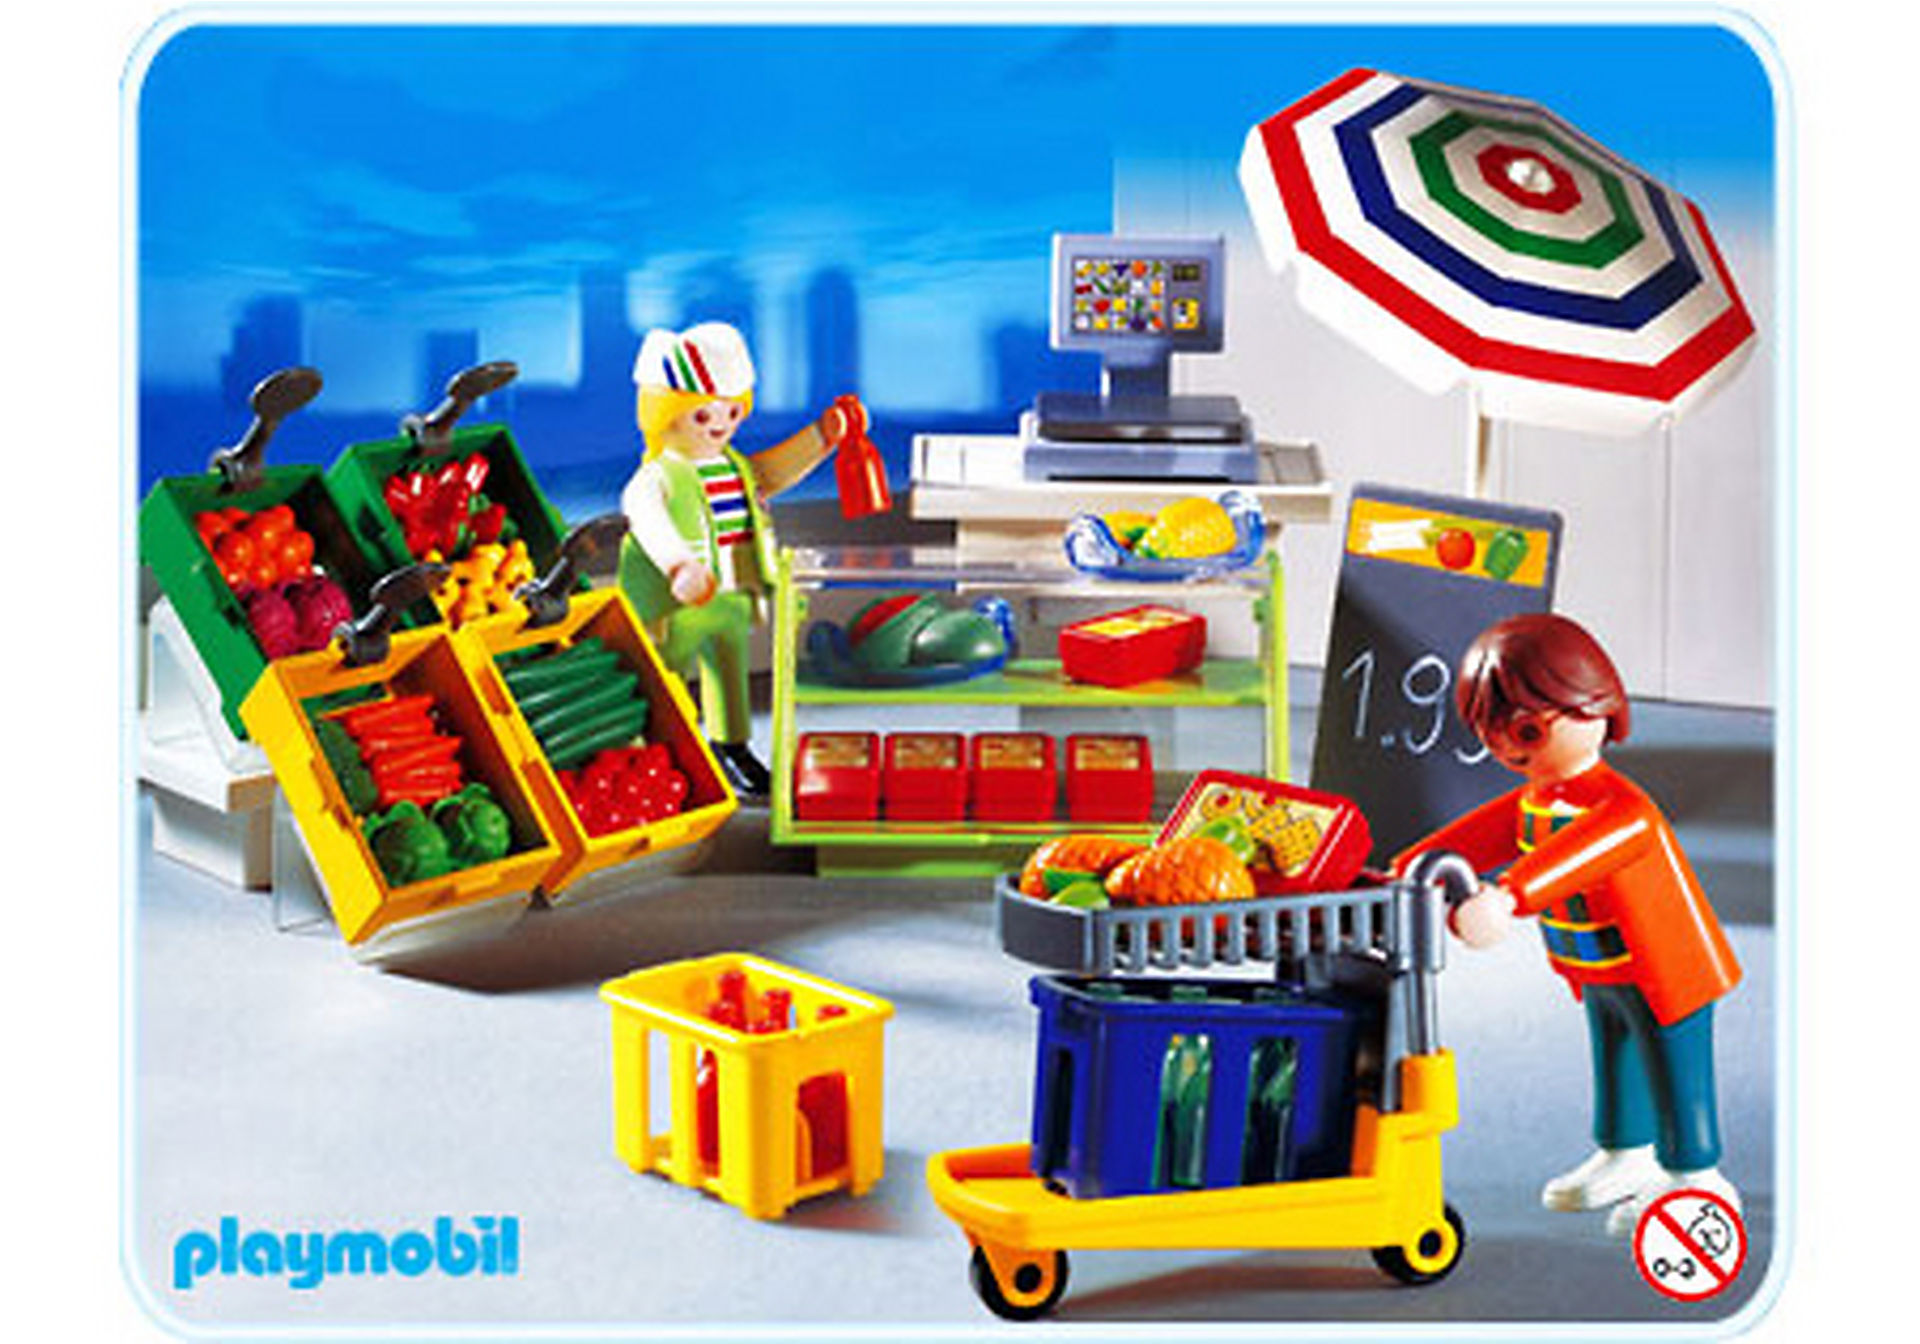 http://media.playmobil.com/i/playmobil/3202-C_product_detail/Obst- und Gemüsestand